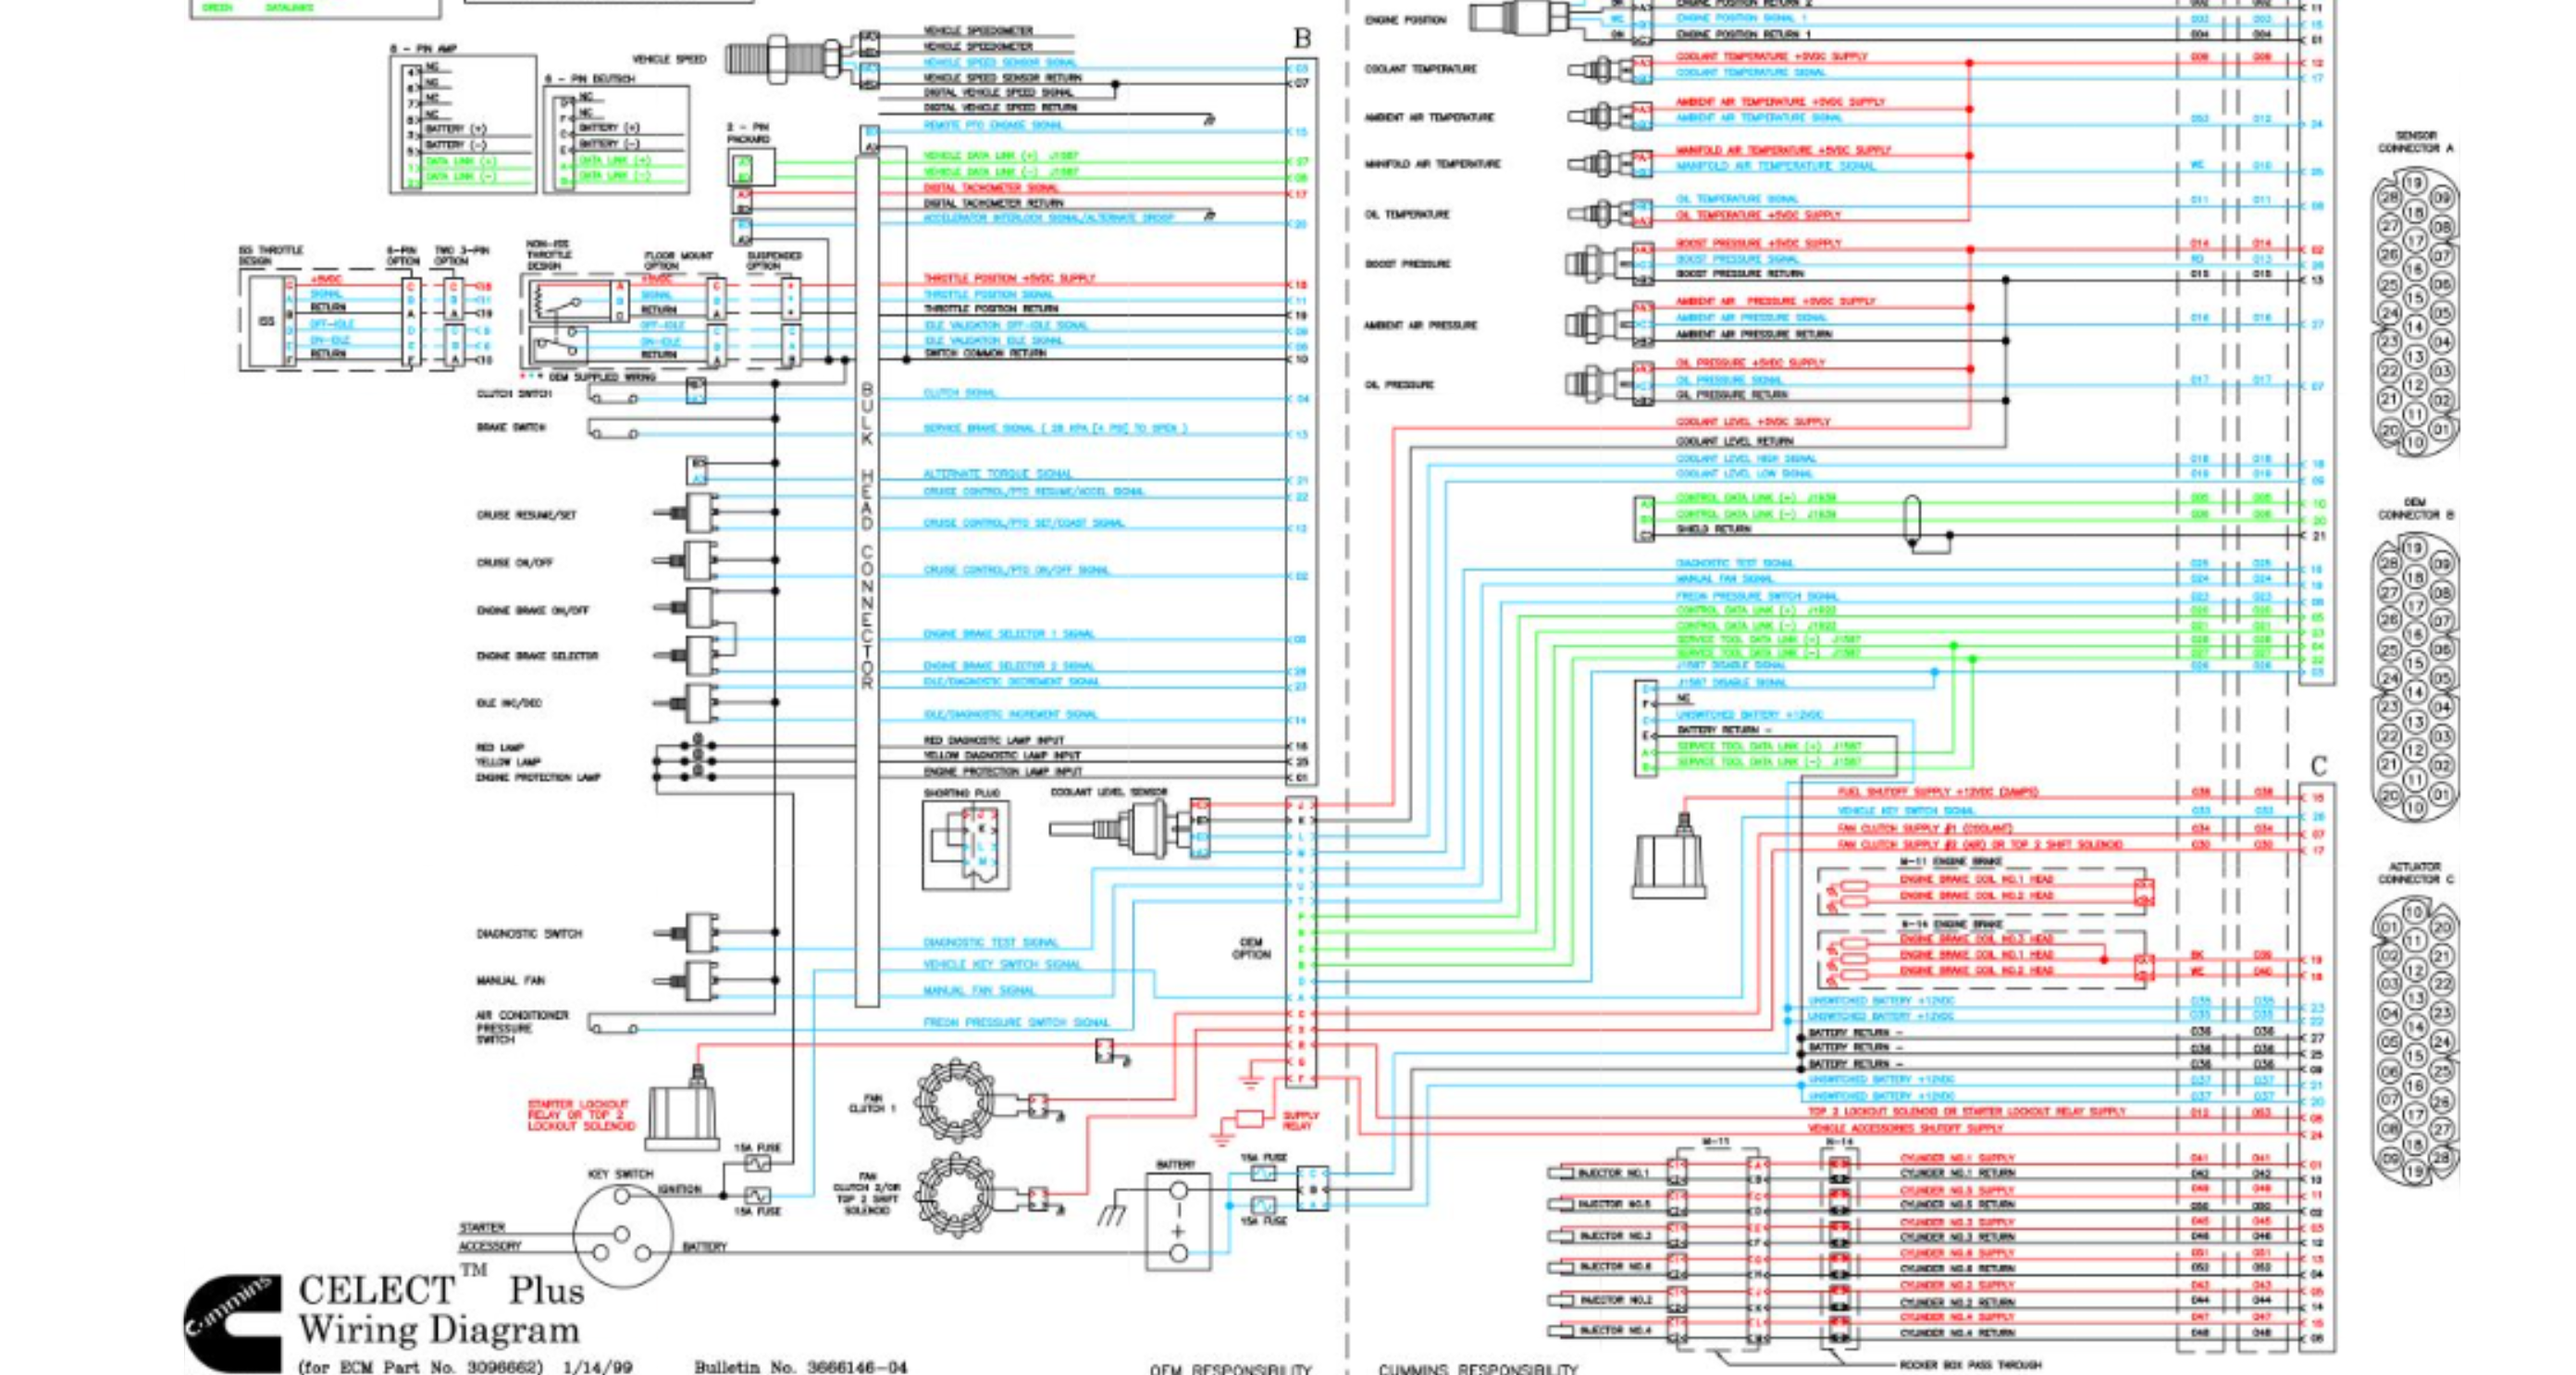 cummins n14 celect plus wiring diagram in need a ecu pin out for cummins n14 select plus celect plus wiring diagram